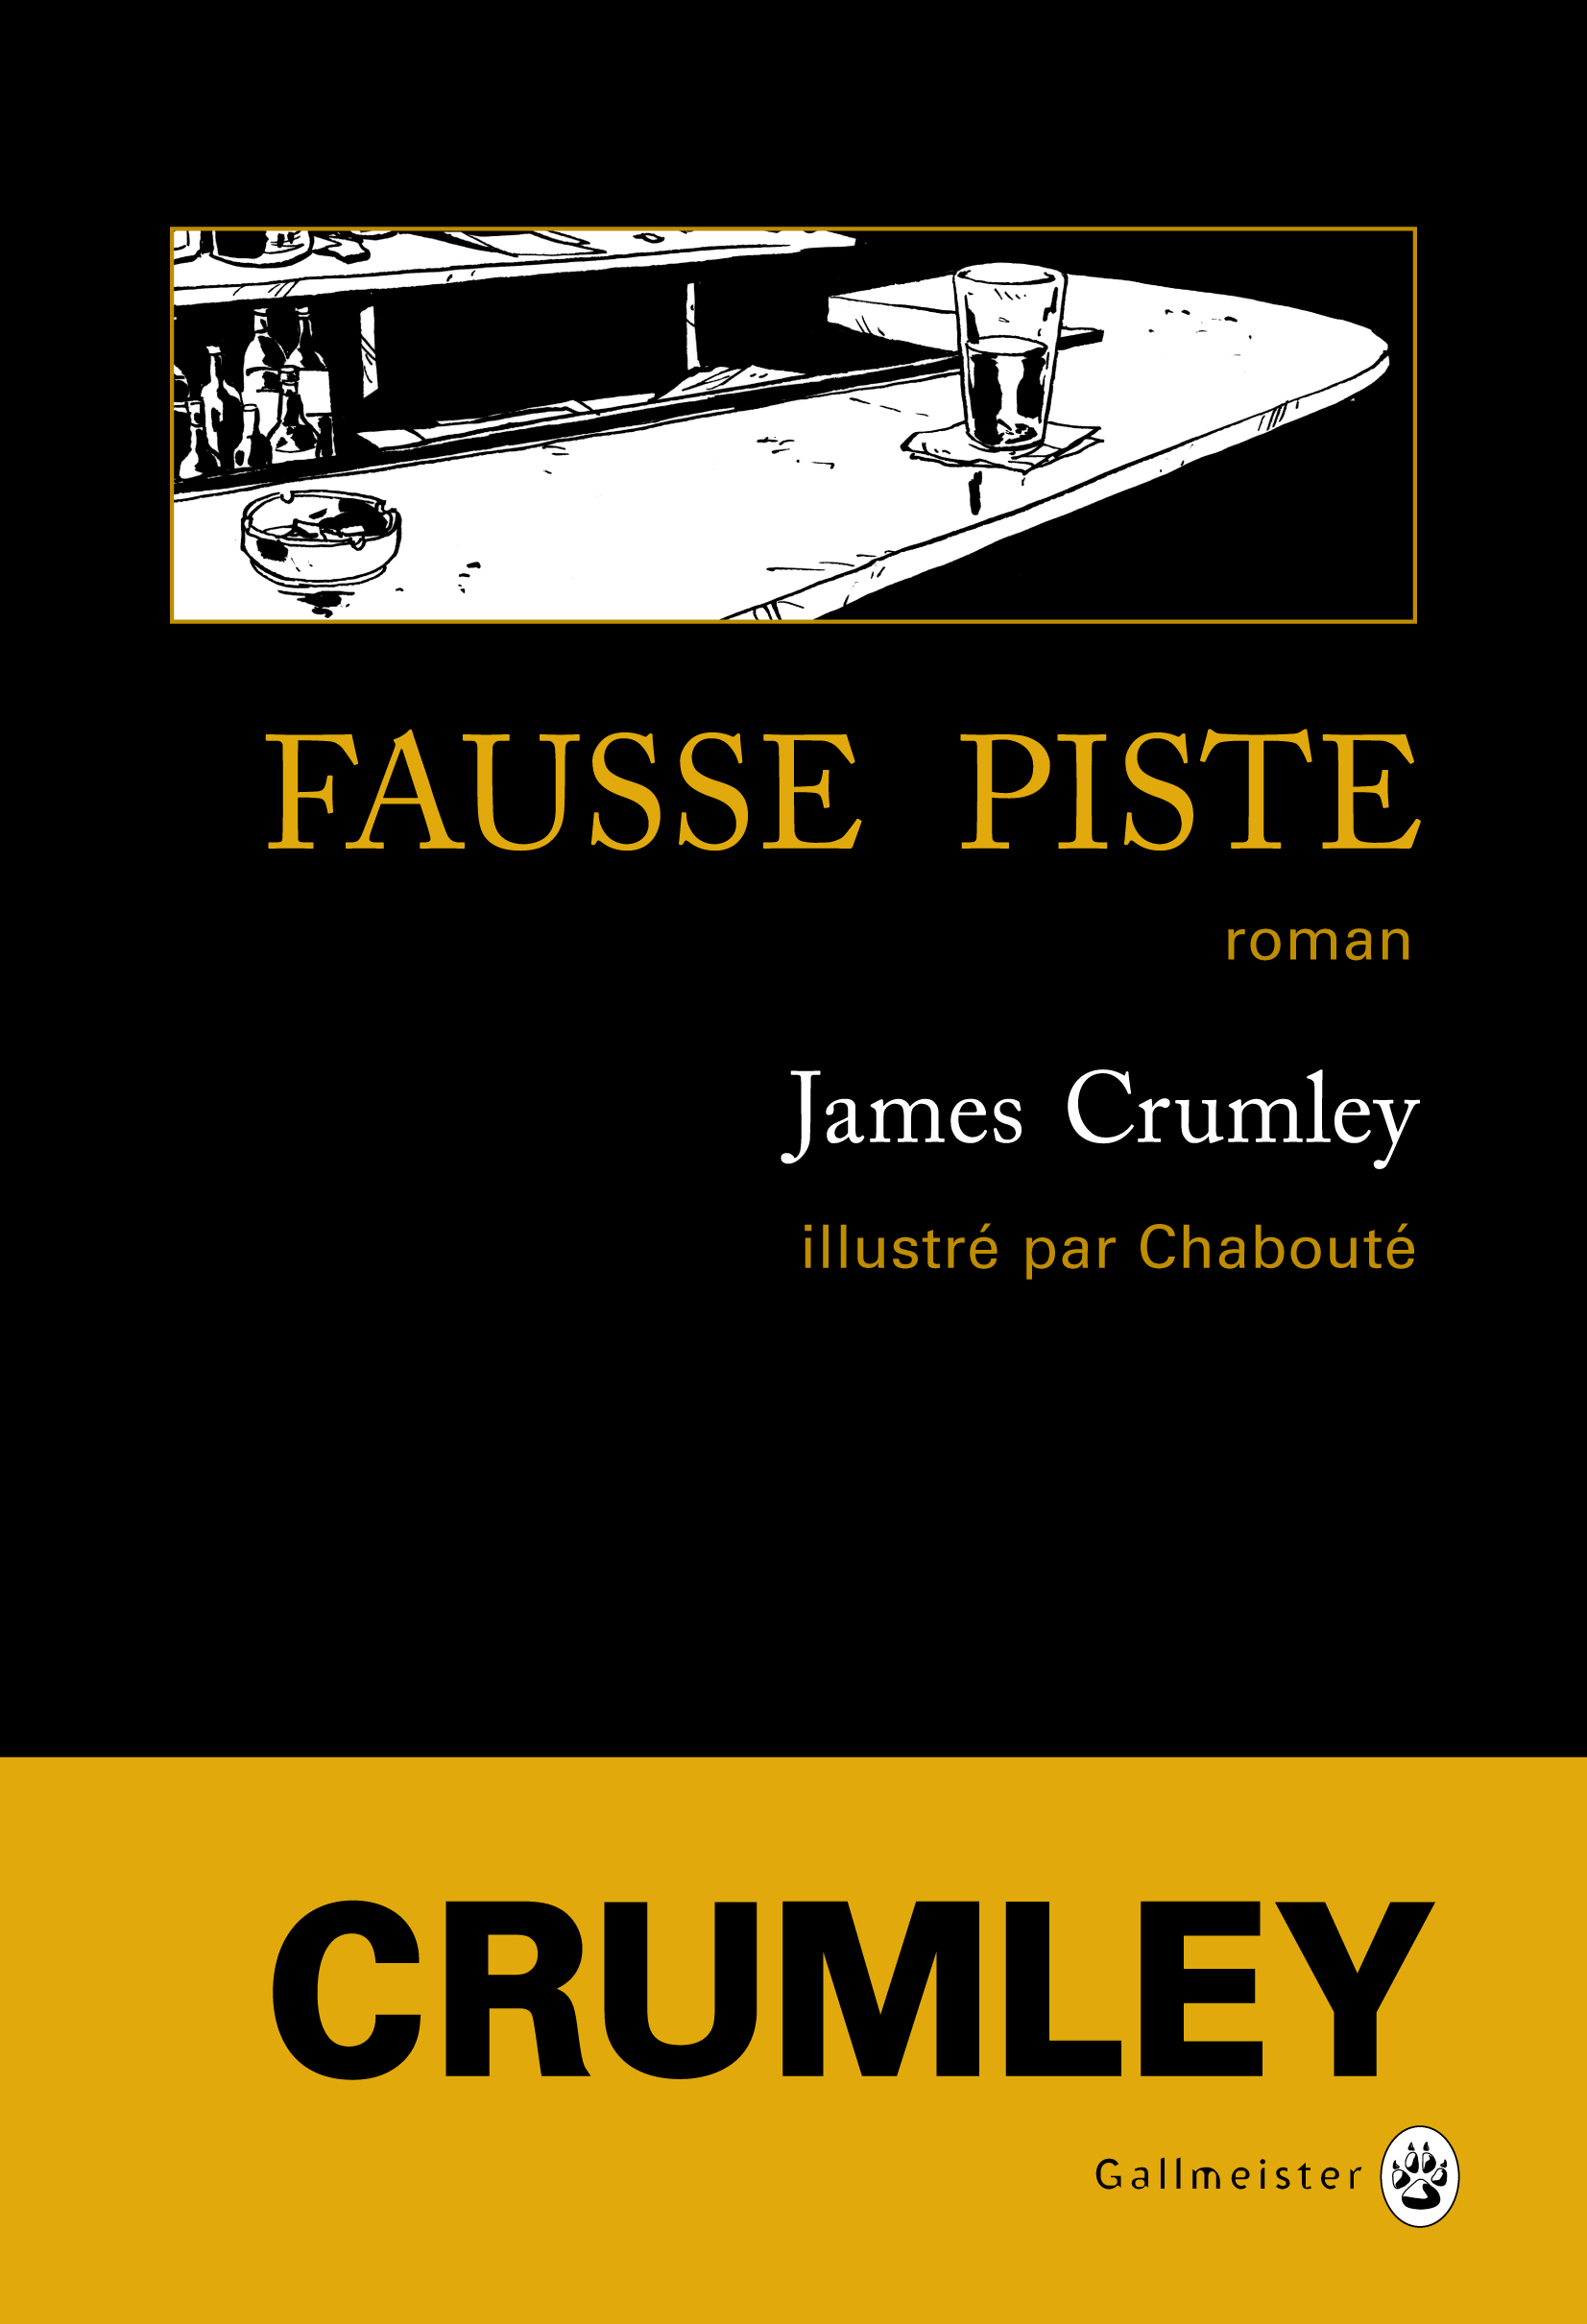 fausse-piste-crumley